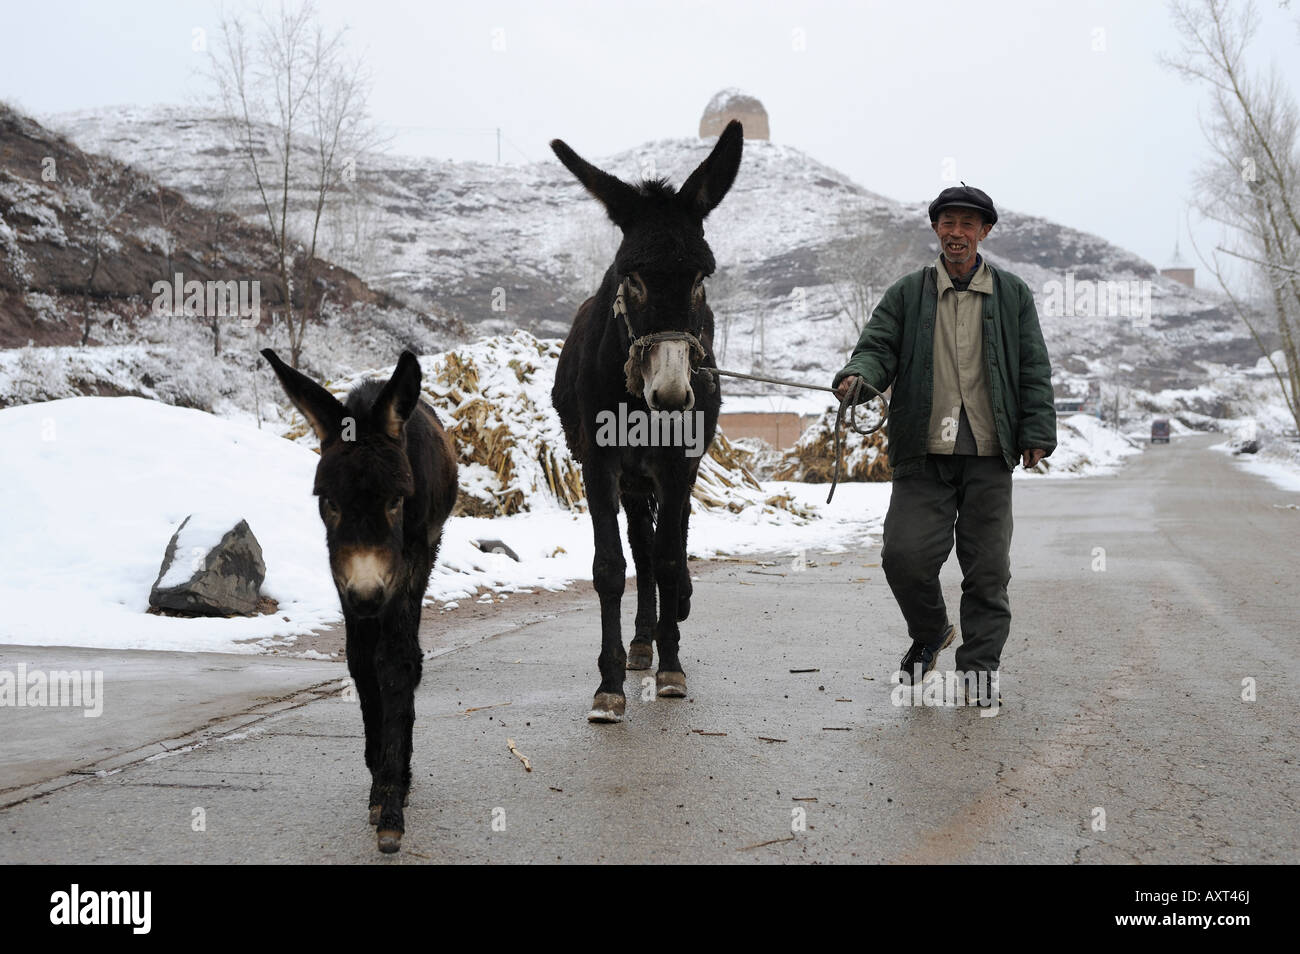 A farmer drives two donkeys in Chicheng county, Hebei province, China. 28-Mar-2008 - Stock Image